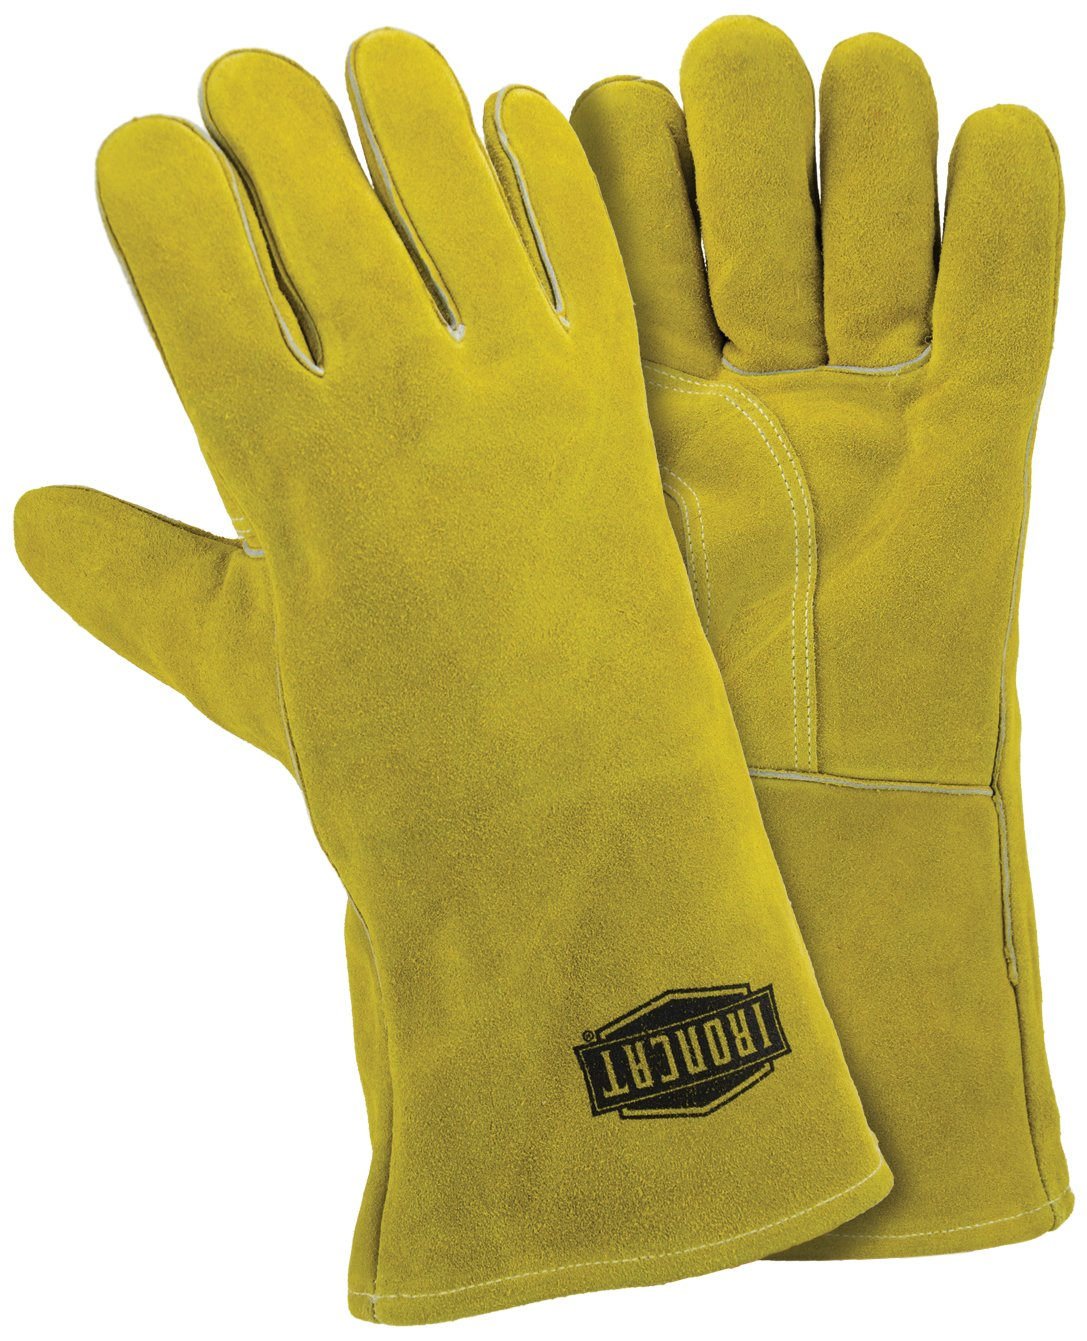 IRONCAT 9040 Insulated Slightly Select Cowhide Welding Gloves, Large (Pack of 12 Pairs)